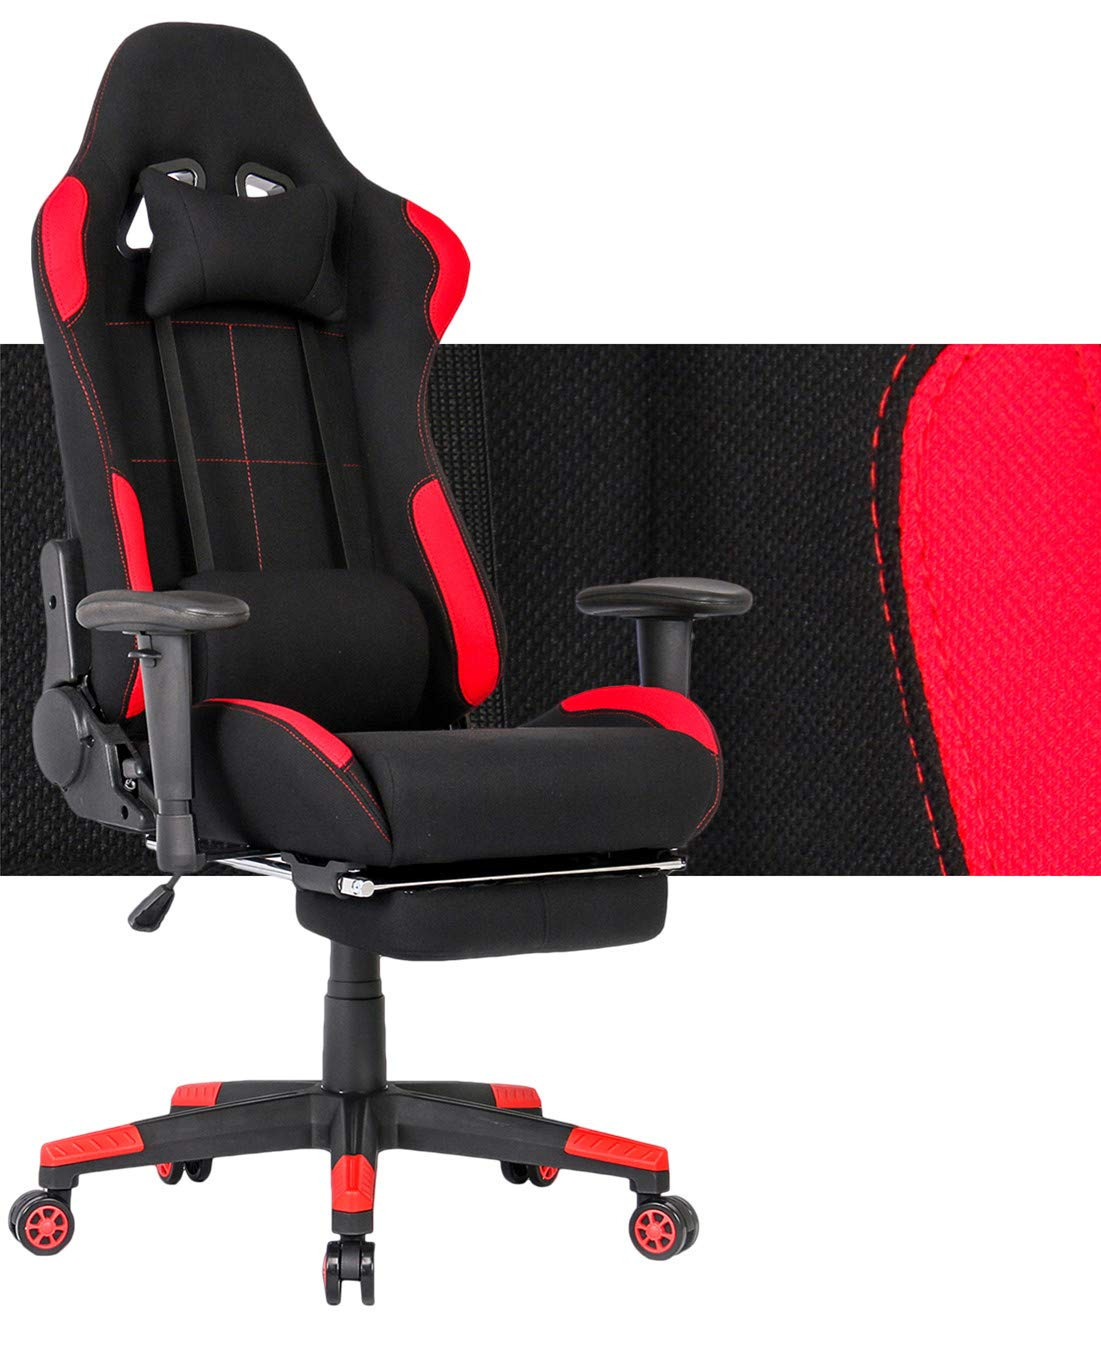 Ergonomic Gaming Chair Racing Style Office Chair Recliner Computer Chair Fabric High-Back E-Sports Chair Height Adjustable Gaming Office Desk Chair with Massage and Footrest (Black/Red with Footrest) by AKAMAZING